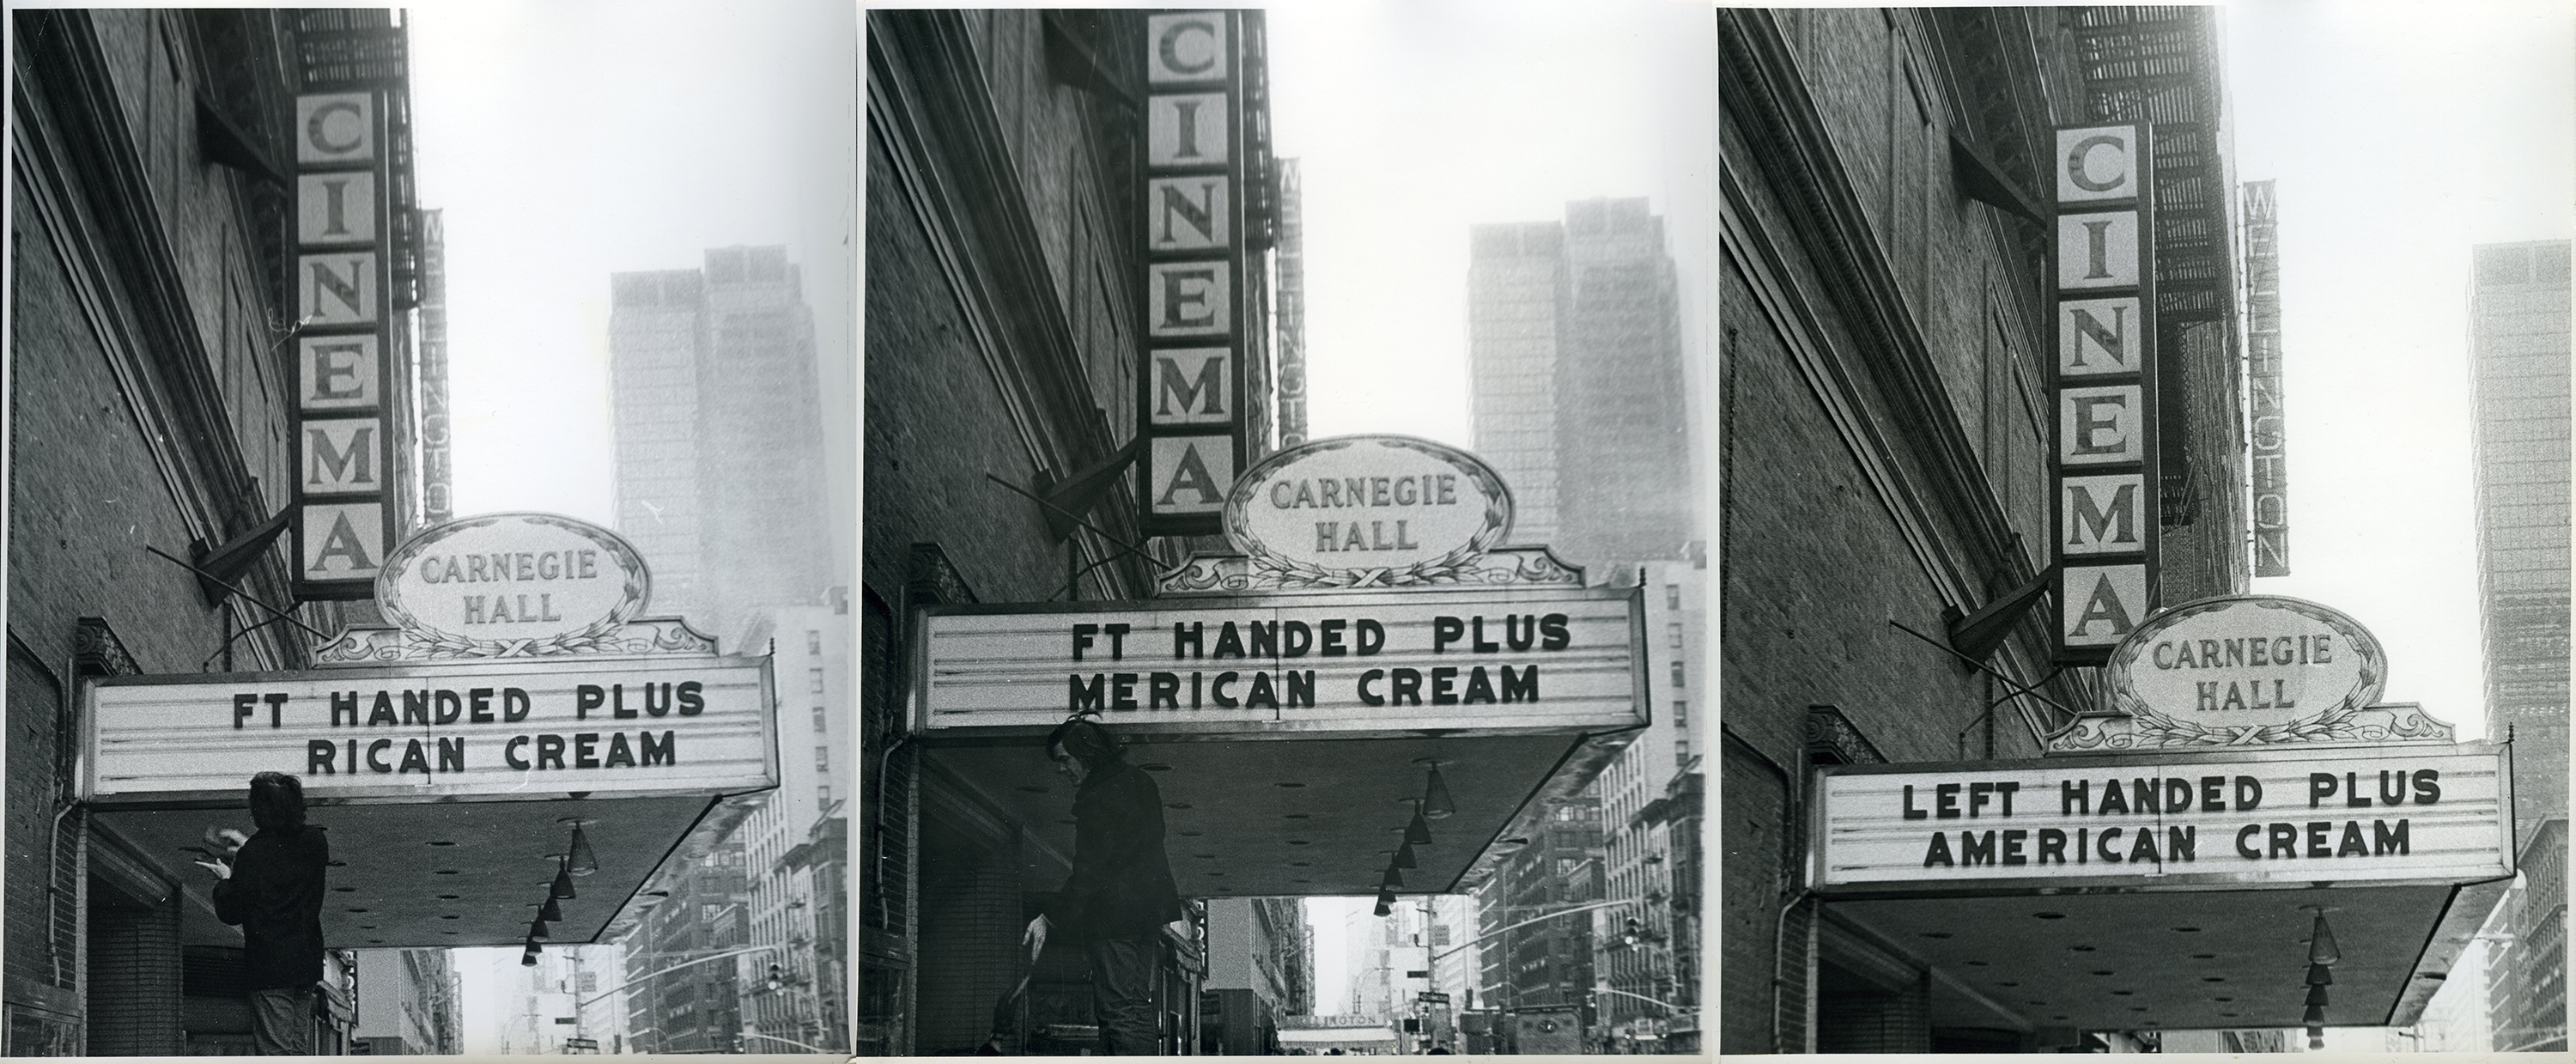 The Carnegie Hall Cinema preparing to premiere American Cream & Left-Handed